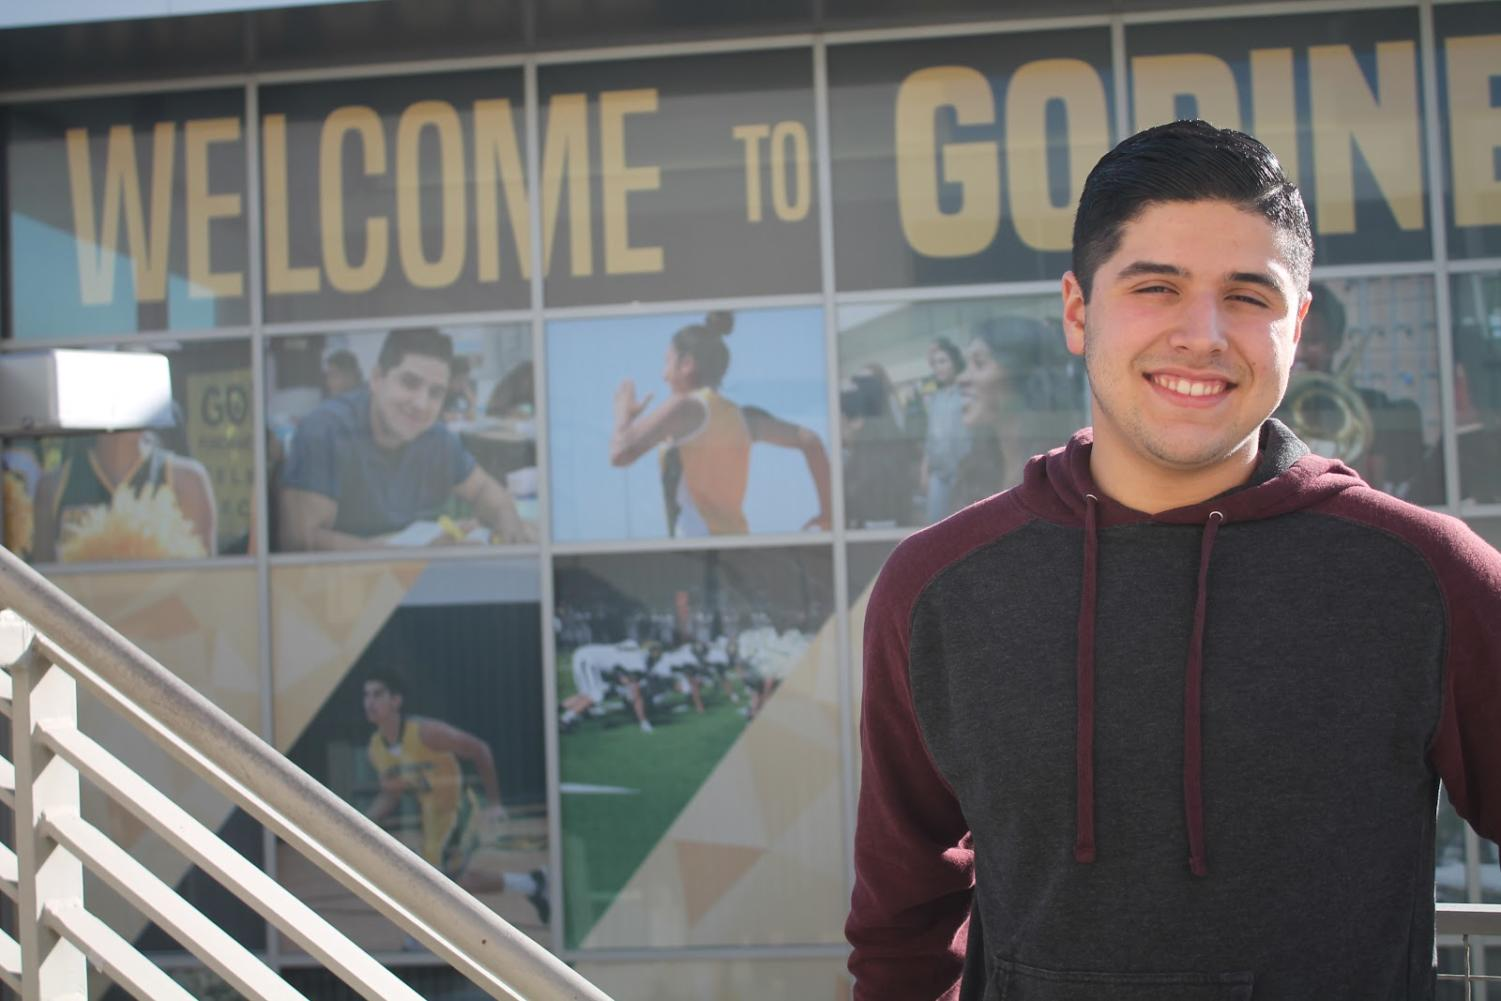 Senior Julio Ortega stands in front of the new window coverings that features himself.